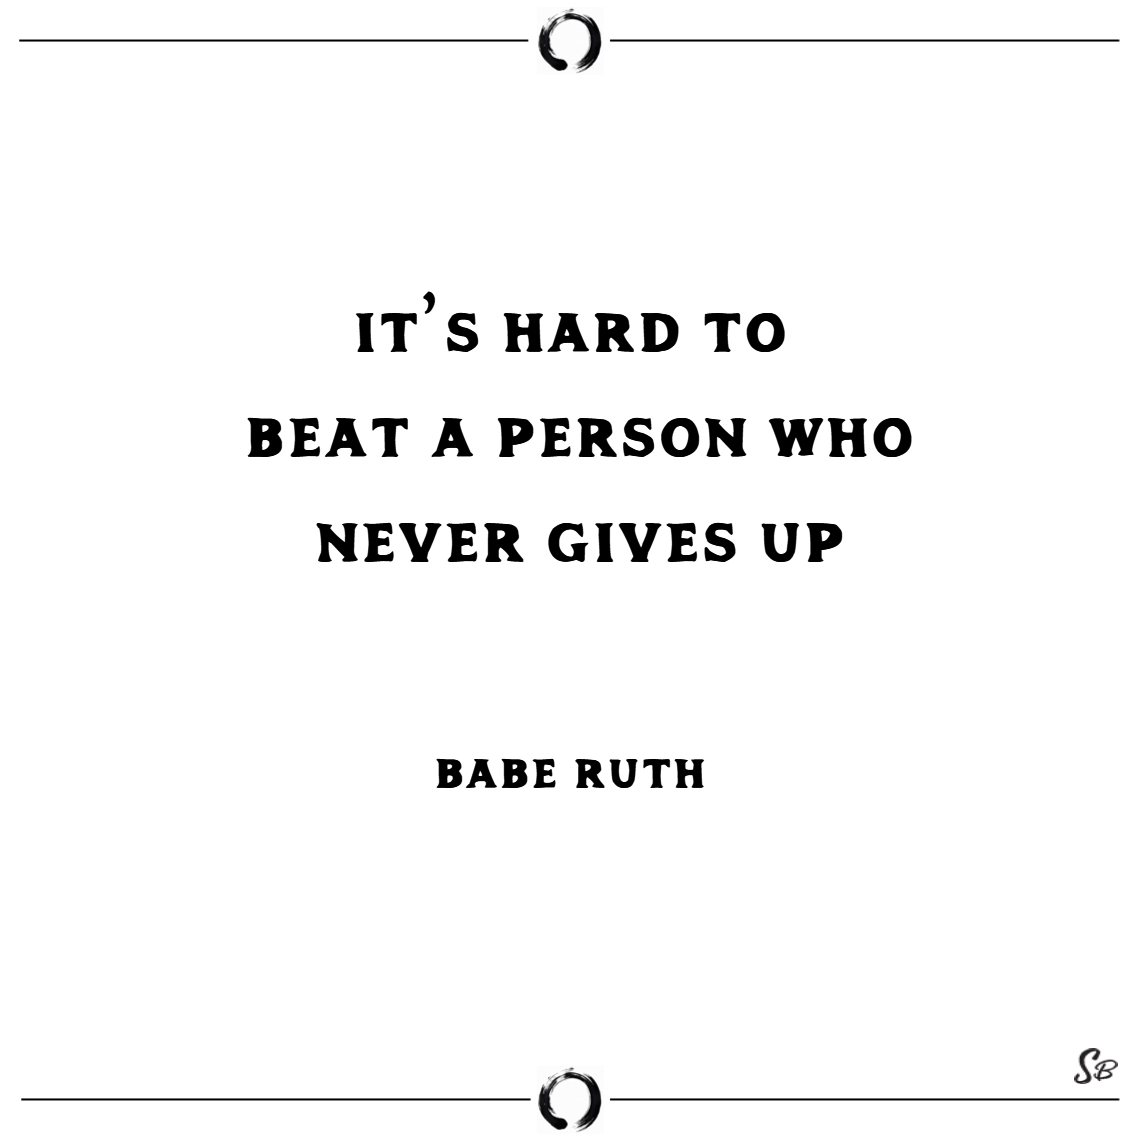 It's hard to beat a person who never gives up. – b